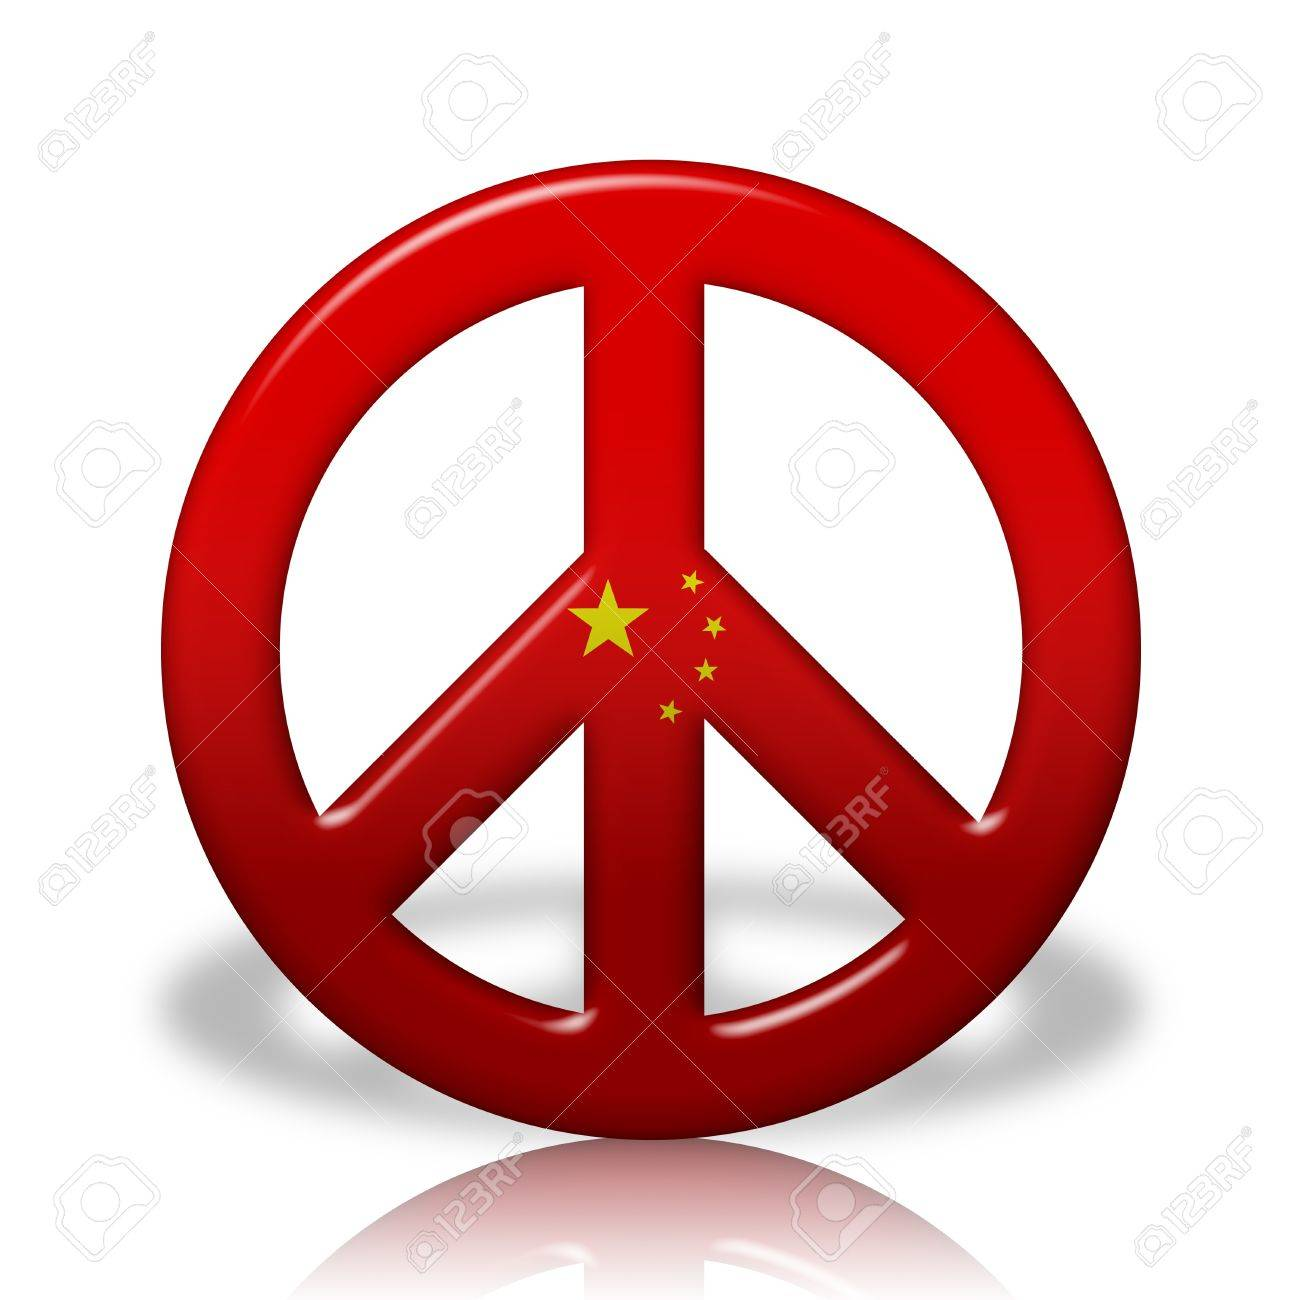 A Peace Sign Symbol In 3d Flag Colors Of China Peace In China Stock